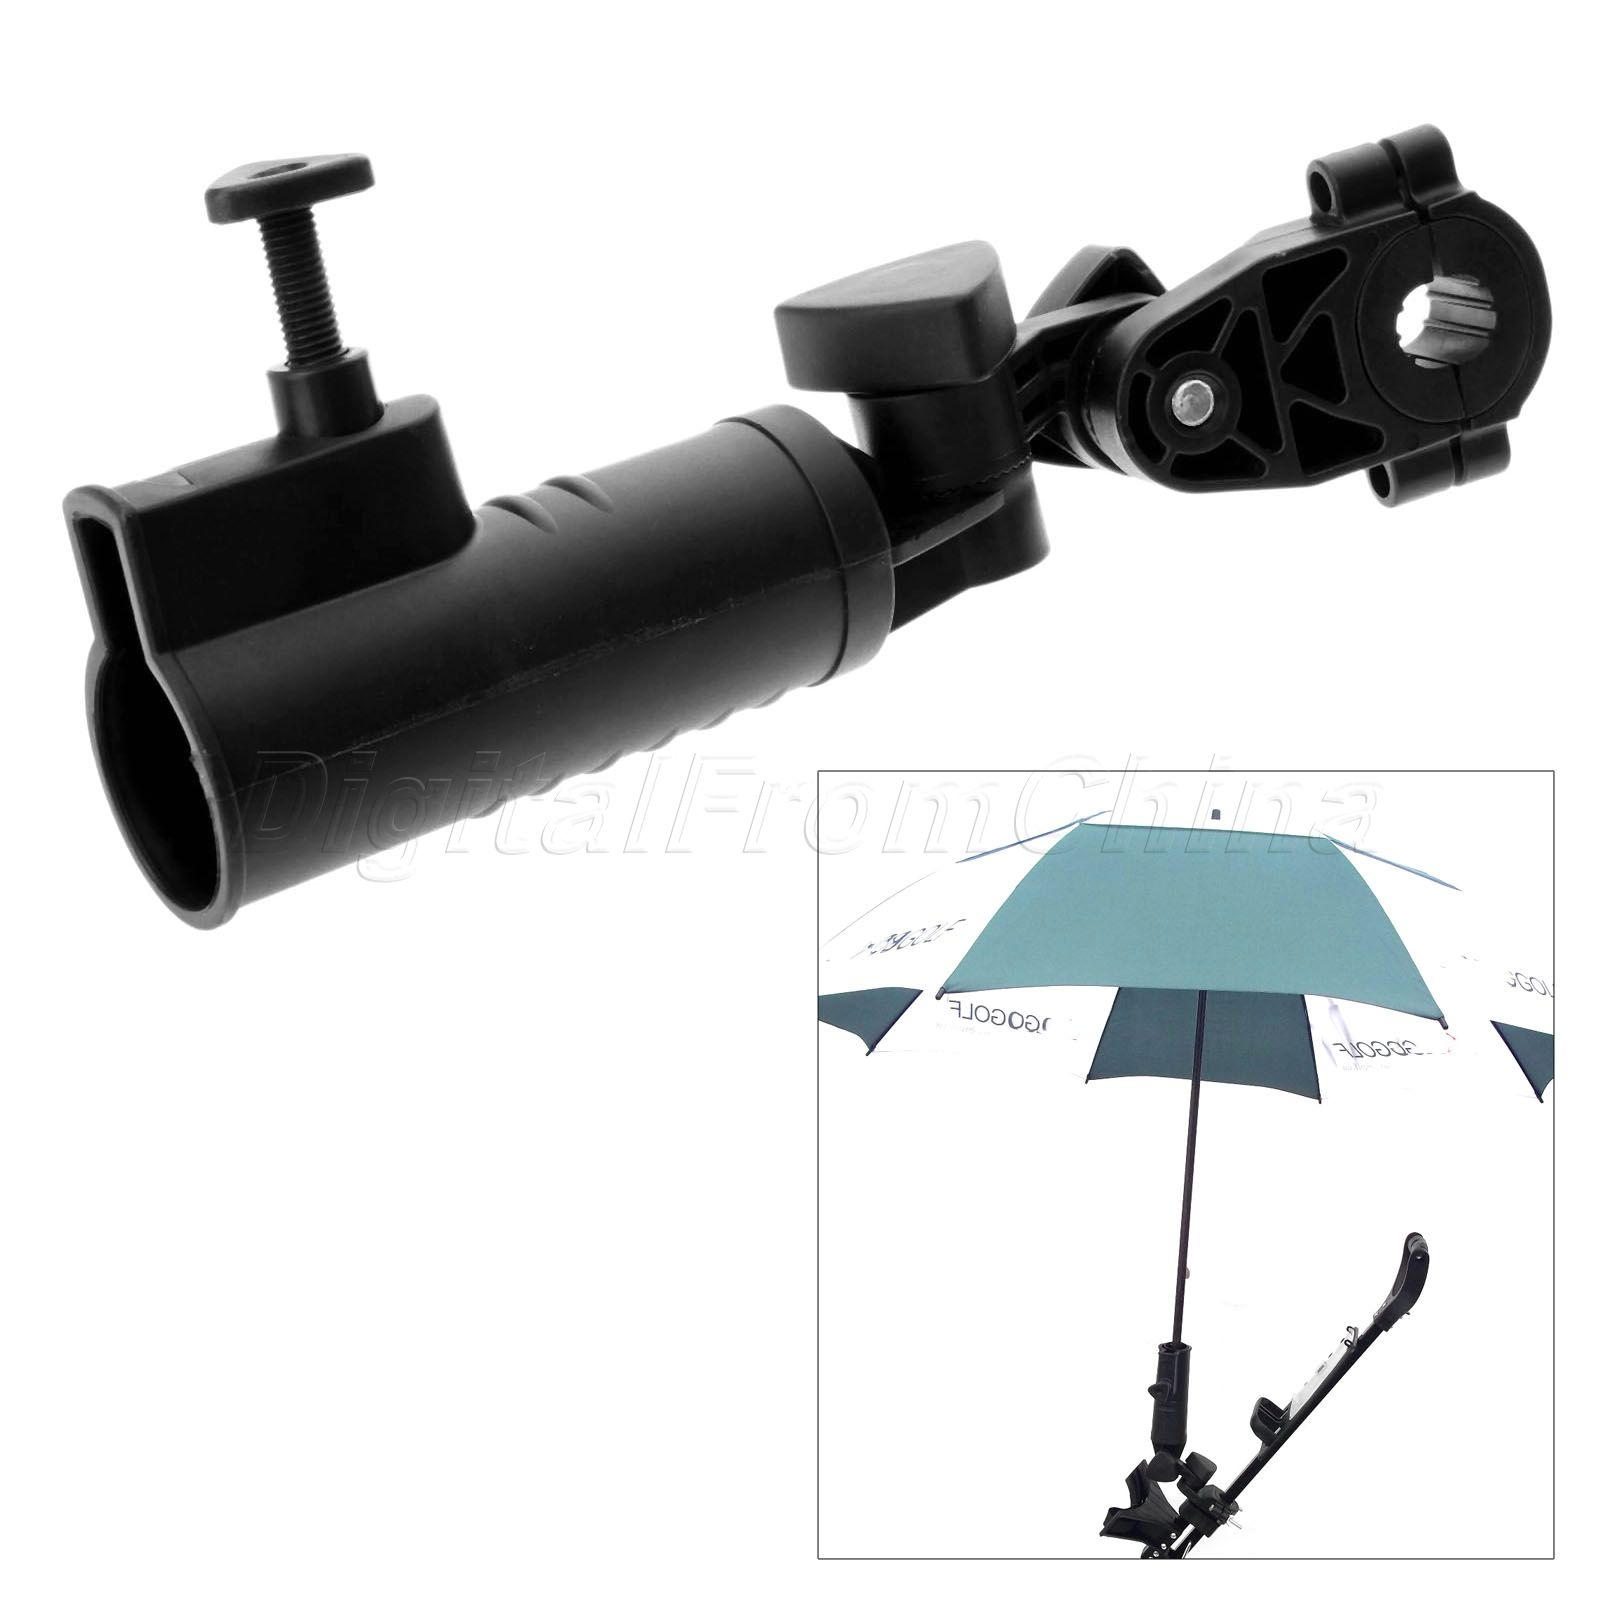 Convenient Plastic Universal <font><b>Golf</b></font> <font><b>Umbrella</b></font> Holder <font><b>Stand</b></font> For Buggy Cart Baby Pram Wheelchair Black <font><b>Golf</b></font> Training Aids Accessories image